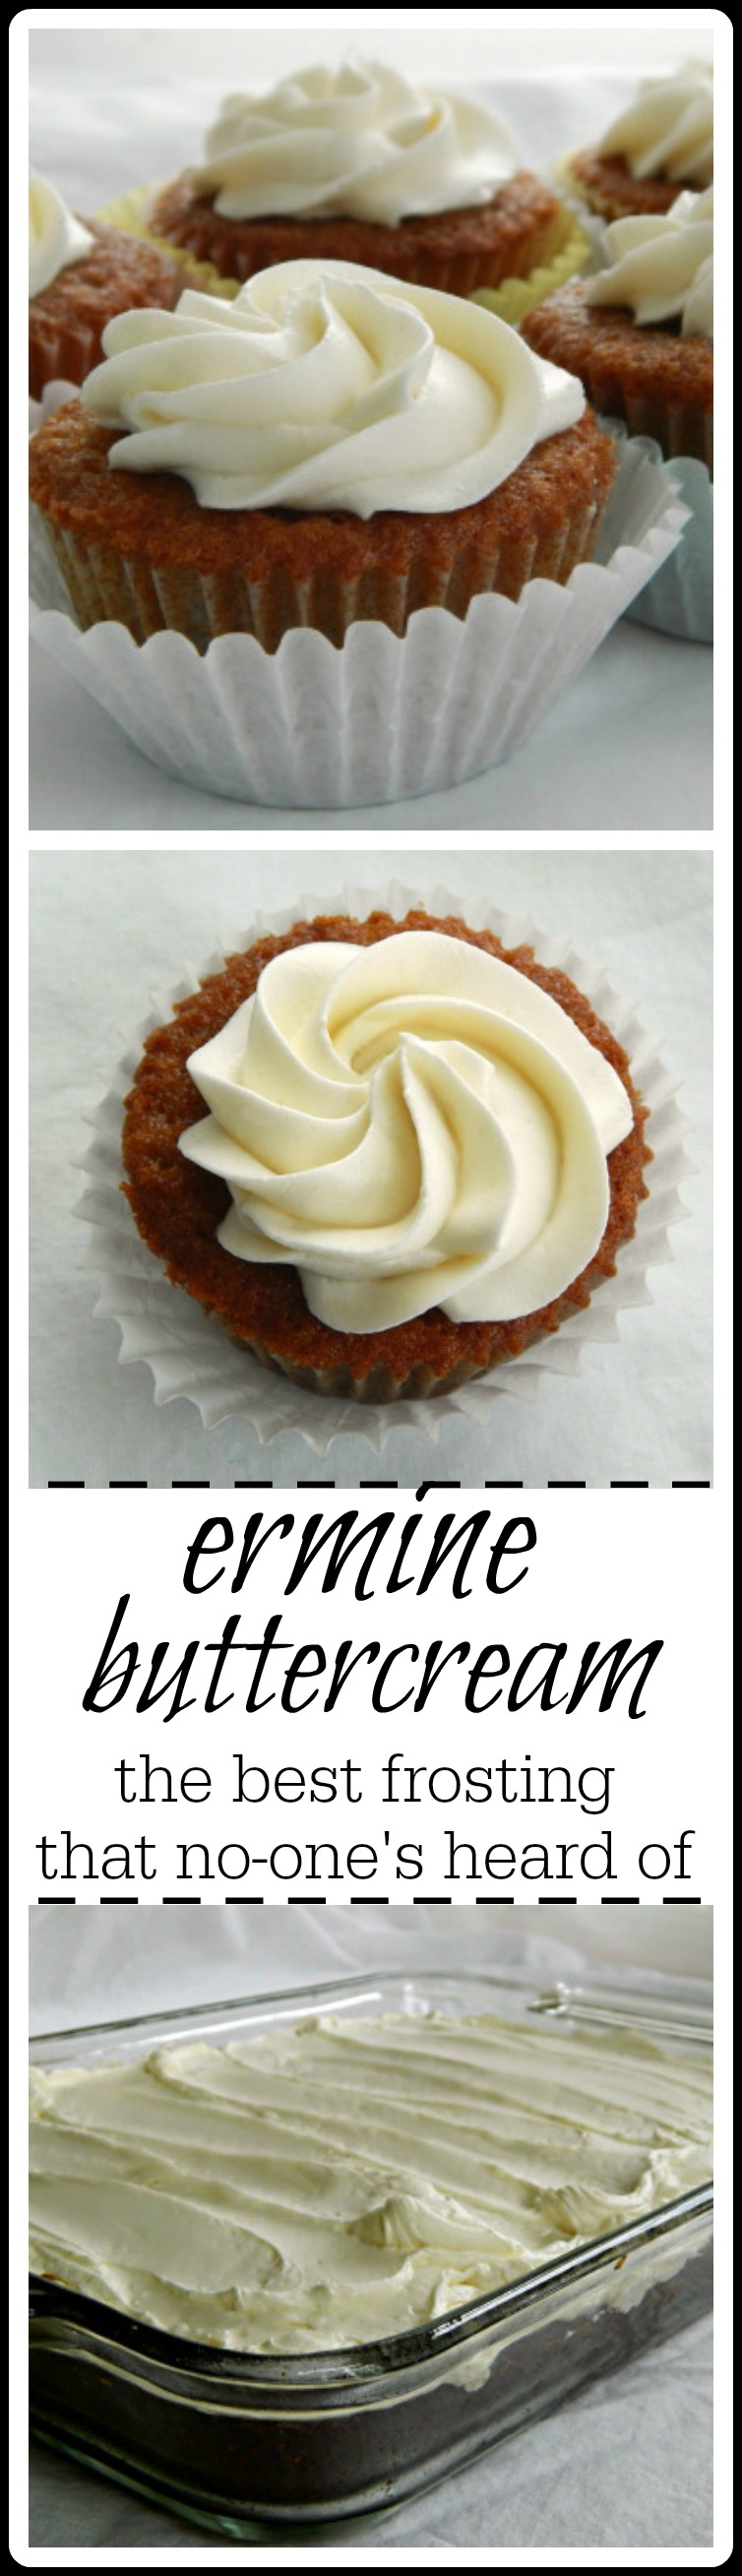 Of all the buttercreams, Ermine Buttercream is the real favorite at our house. You might know it as flour-based or pudding based. It's silky, smooth, substantial yet light. It's also the original frosting for Red Velvet Cake. I love Ermine Buttercream because it's not too too sweet. #Buttercream #Ermine Buttercream #Red Velvet Cake Frosting